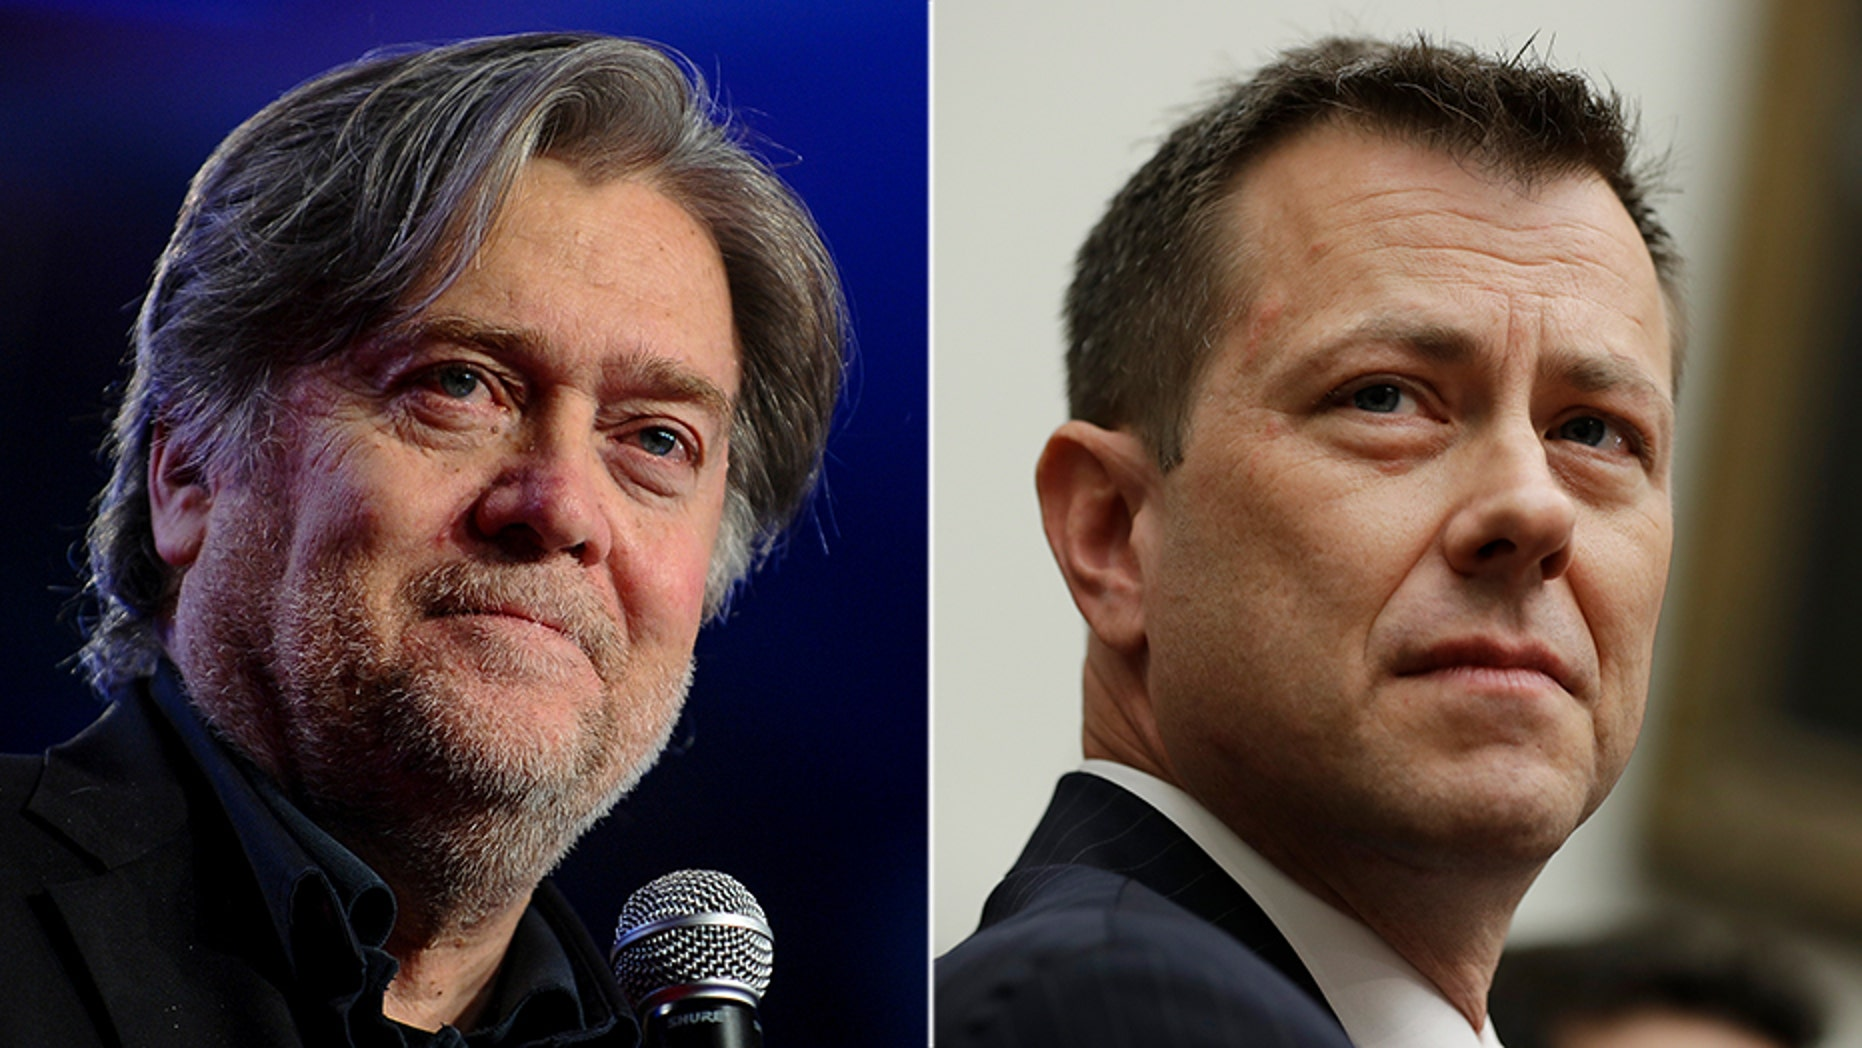 Democrats unsuccessfully tried to change the subject to a discussion about holding ex-White House aide Steve Bannon (left) in contempt, during a hearing Thursday with FBI agent Peter Strzok.